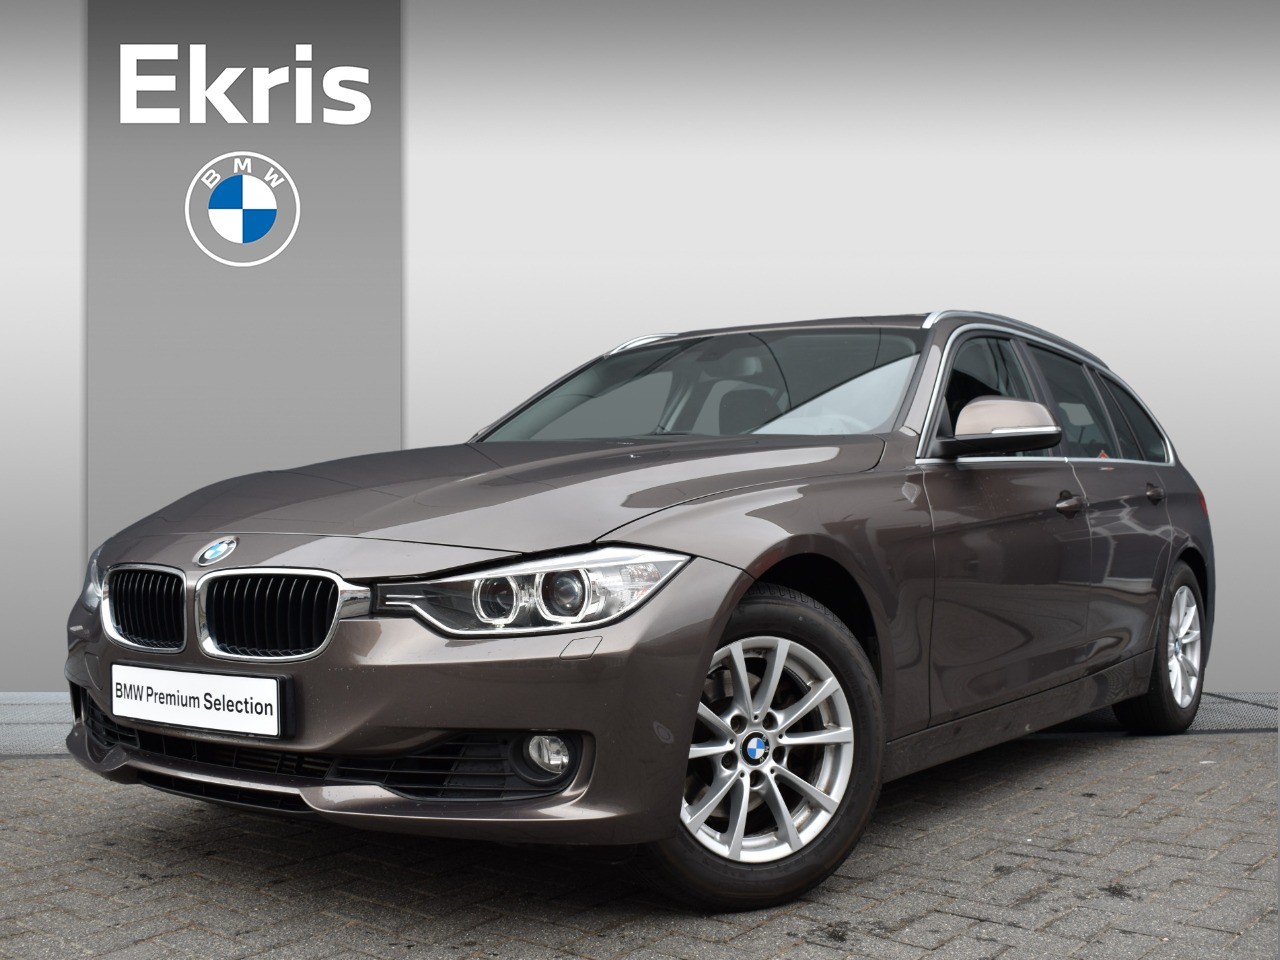 "Bmw 3 serie Touring 320i executive navigatie professional / pdc / airconditioning / 16"" - 2 jaar garantie!!"